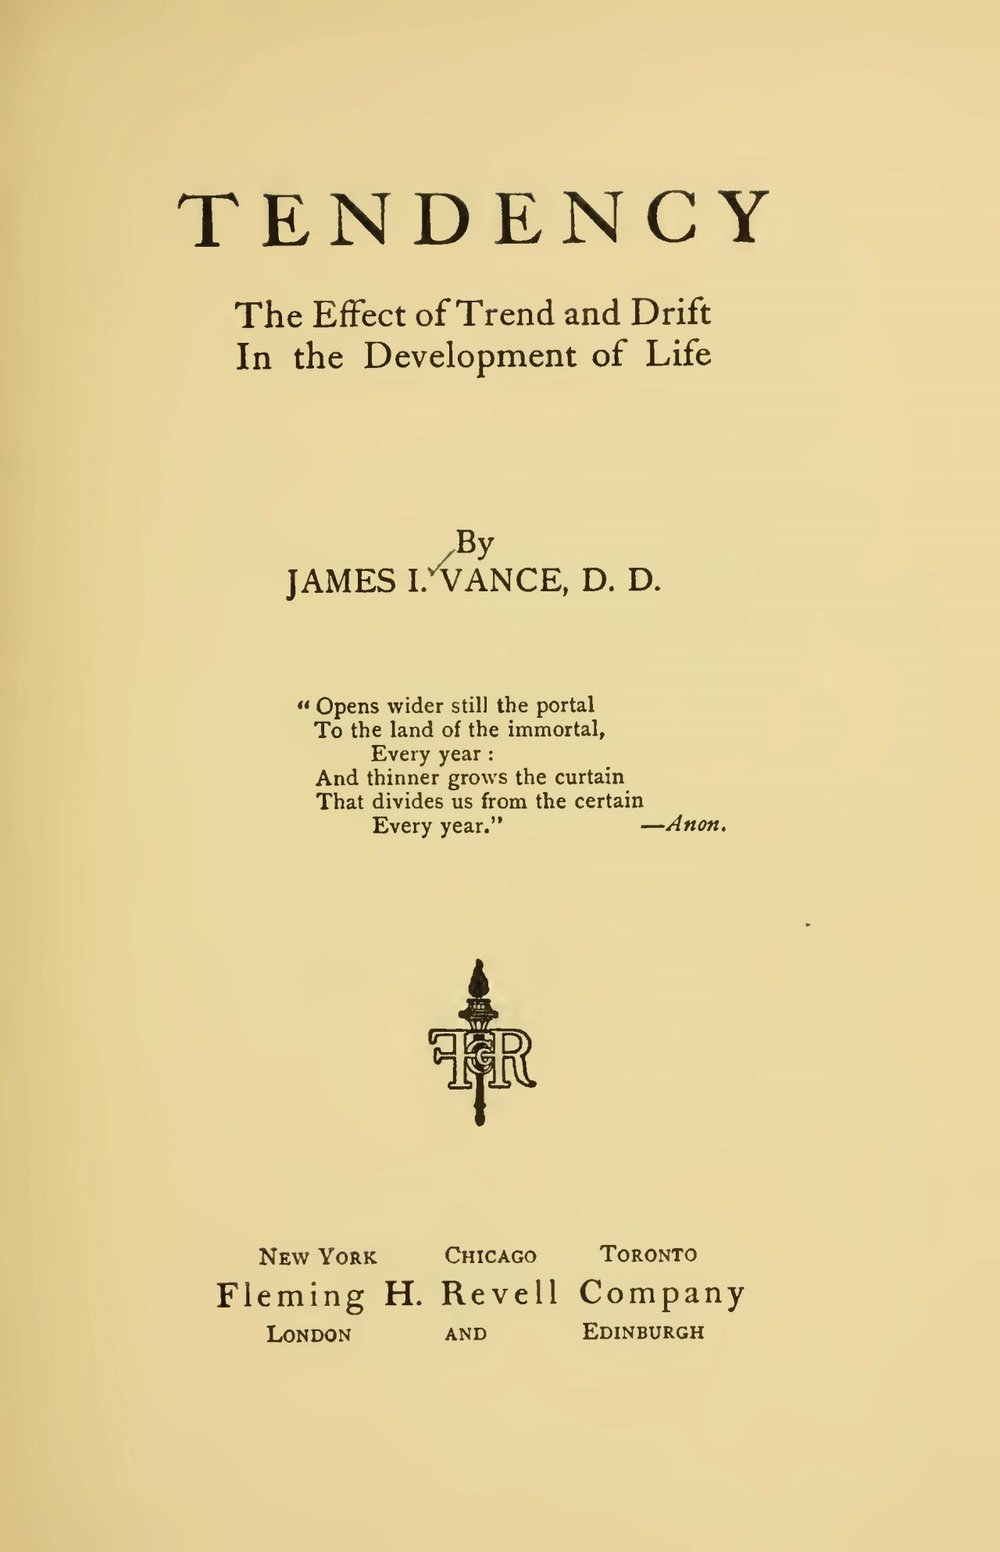 Vance, James Isaac, Tendency Title Page.jpg